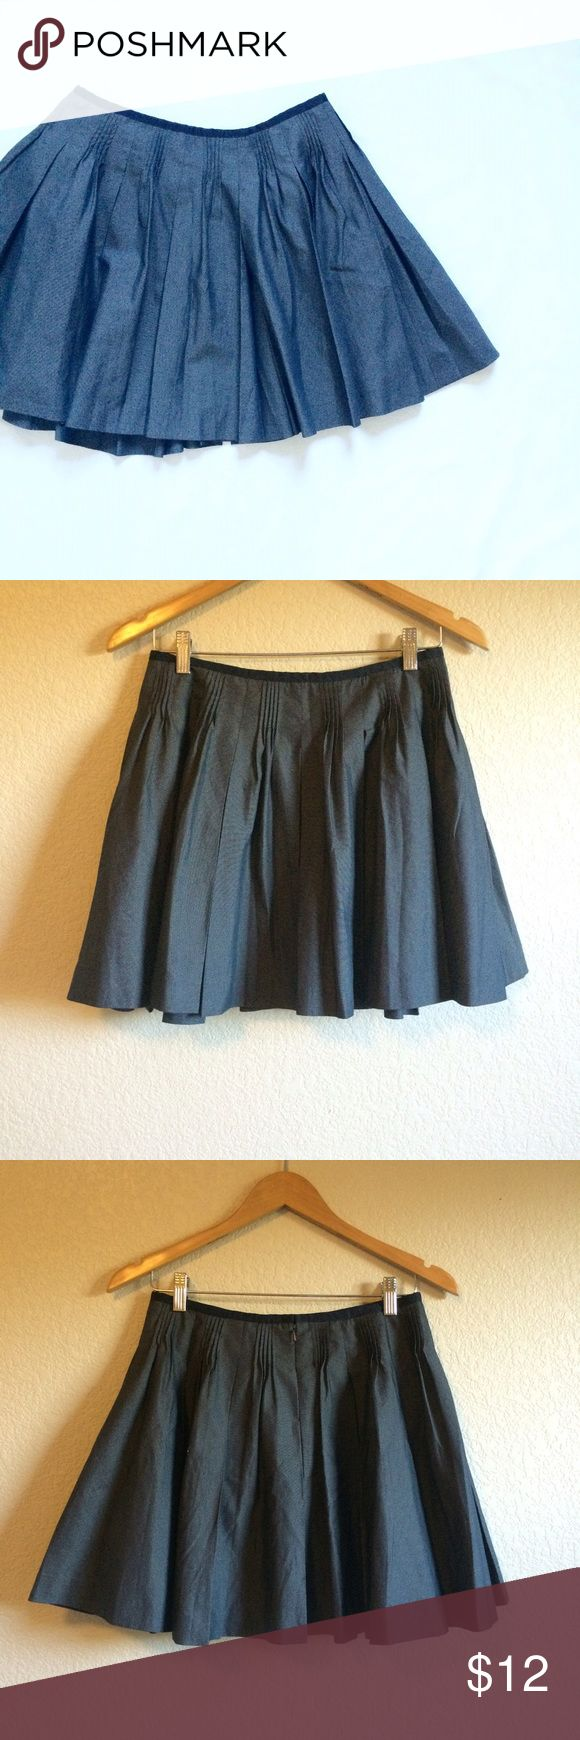 A|X • Skirt This cute pleated skirt looks great dressed up or down. Armani Exchange Skirts Mini